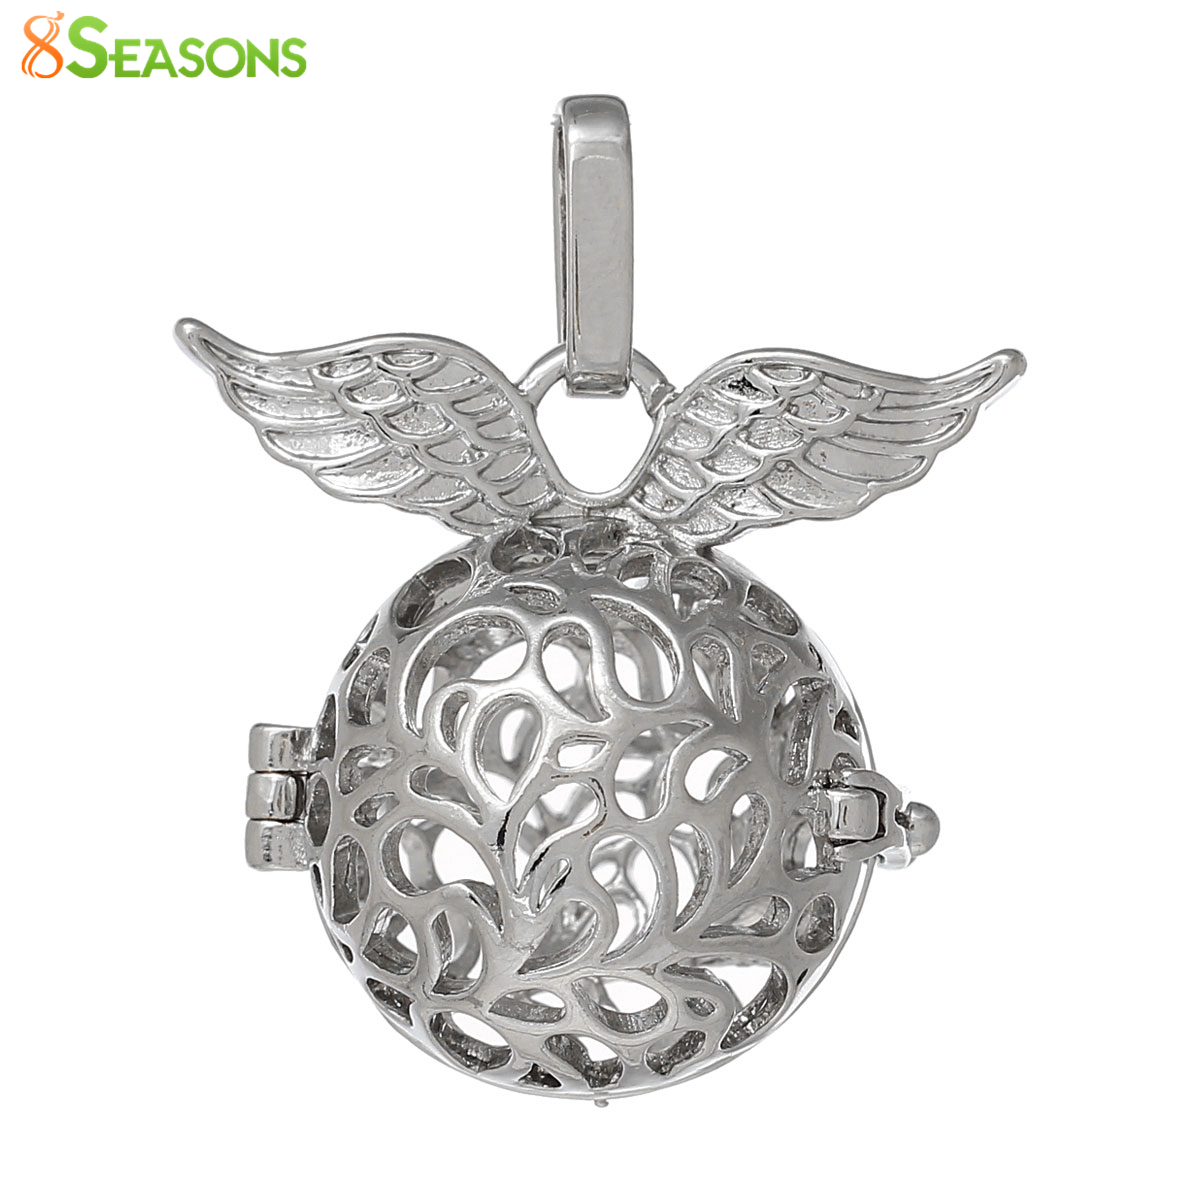 Copper Ball Wish Box Pendants Round Silver Tone Wing Craved Hollow Can Open(Fit Bead Size: 16mm)34mm x 29mm ,1 PC 2016 new(China (Mainland))